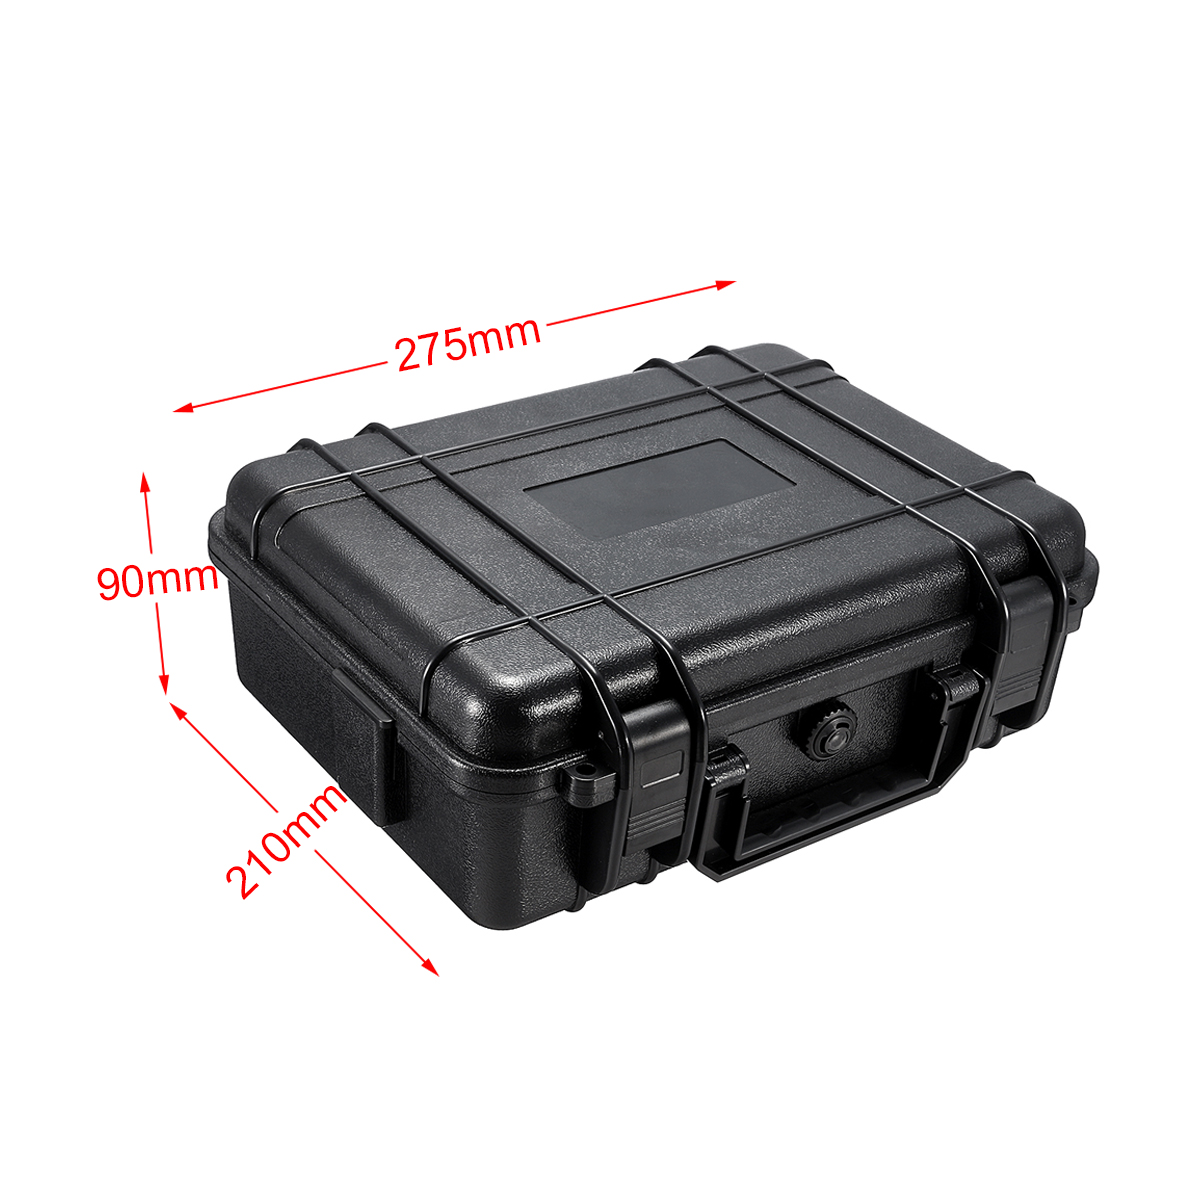 275x210x90mm Waterproof Hard Carry Camera Lens Photography Tool Case Bag Storage Box with Sponge